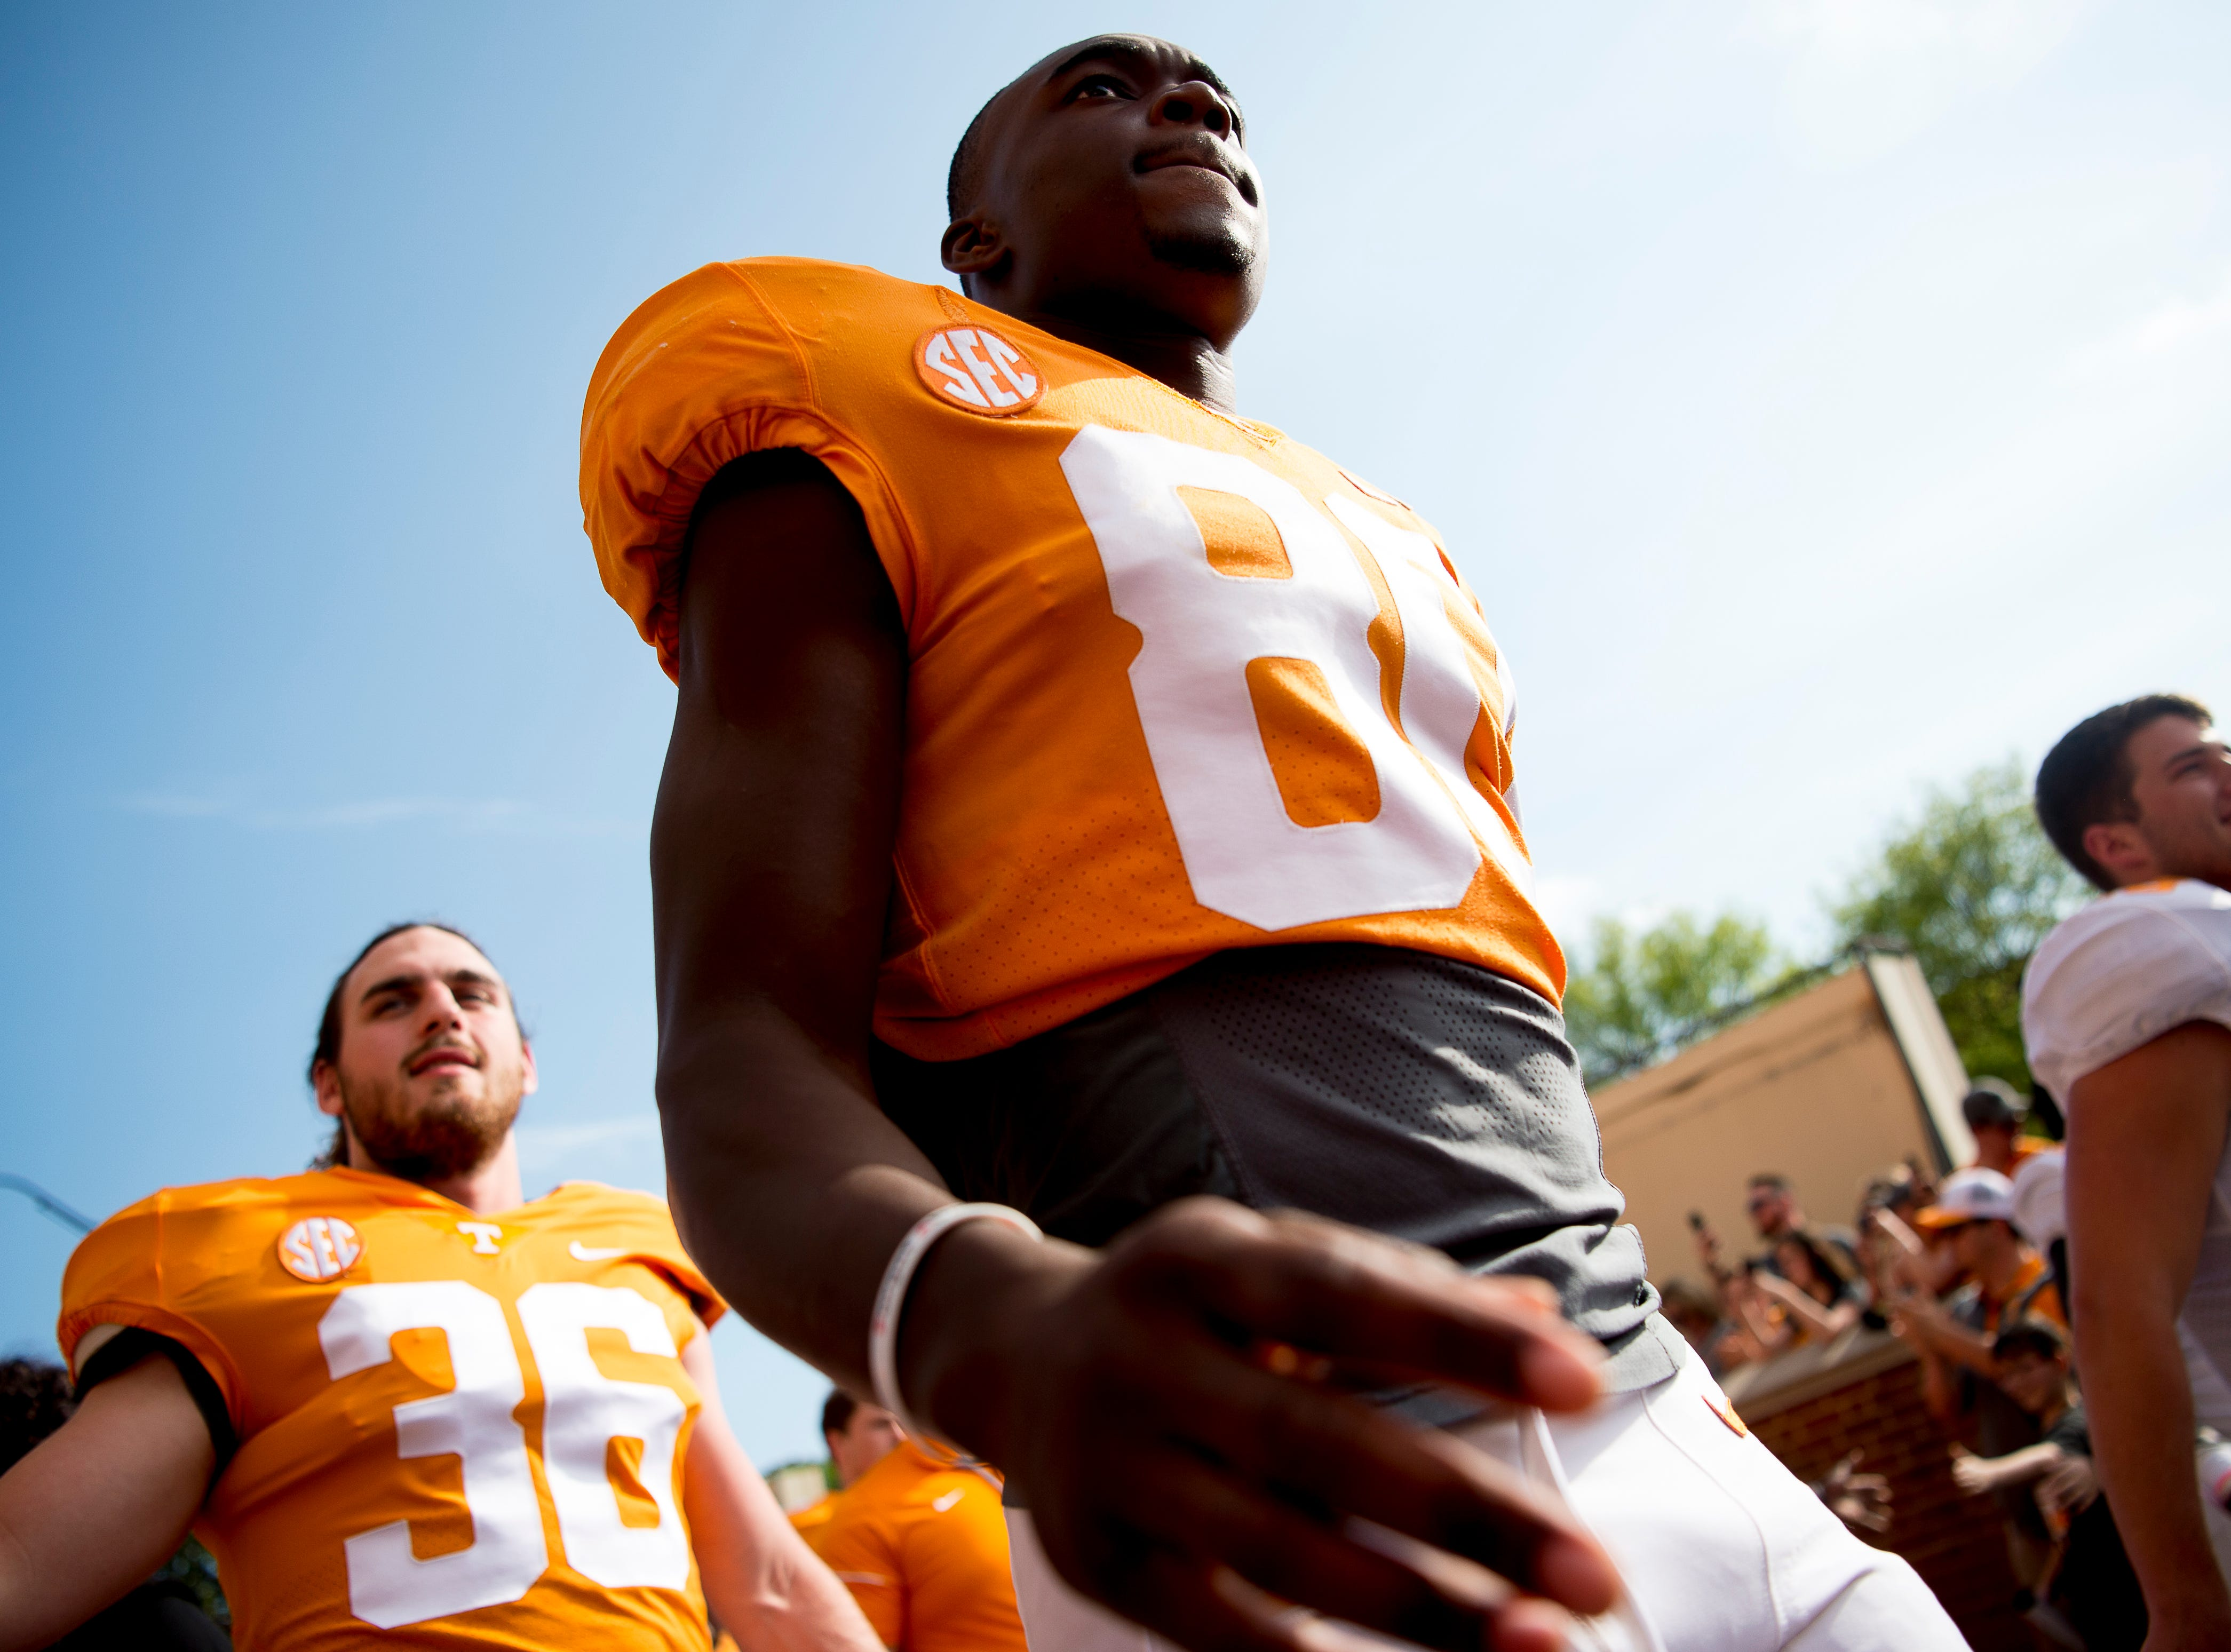 Tennessee wide receiver Ramel Keyton (80) during the Vol Walk at the Tennessee Spring Game at Neyland Stadium in Knoxville, Tennessee on Saturday, April 13, 2019.